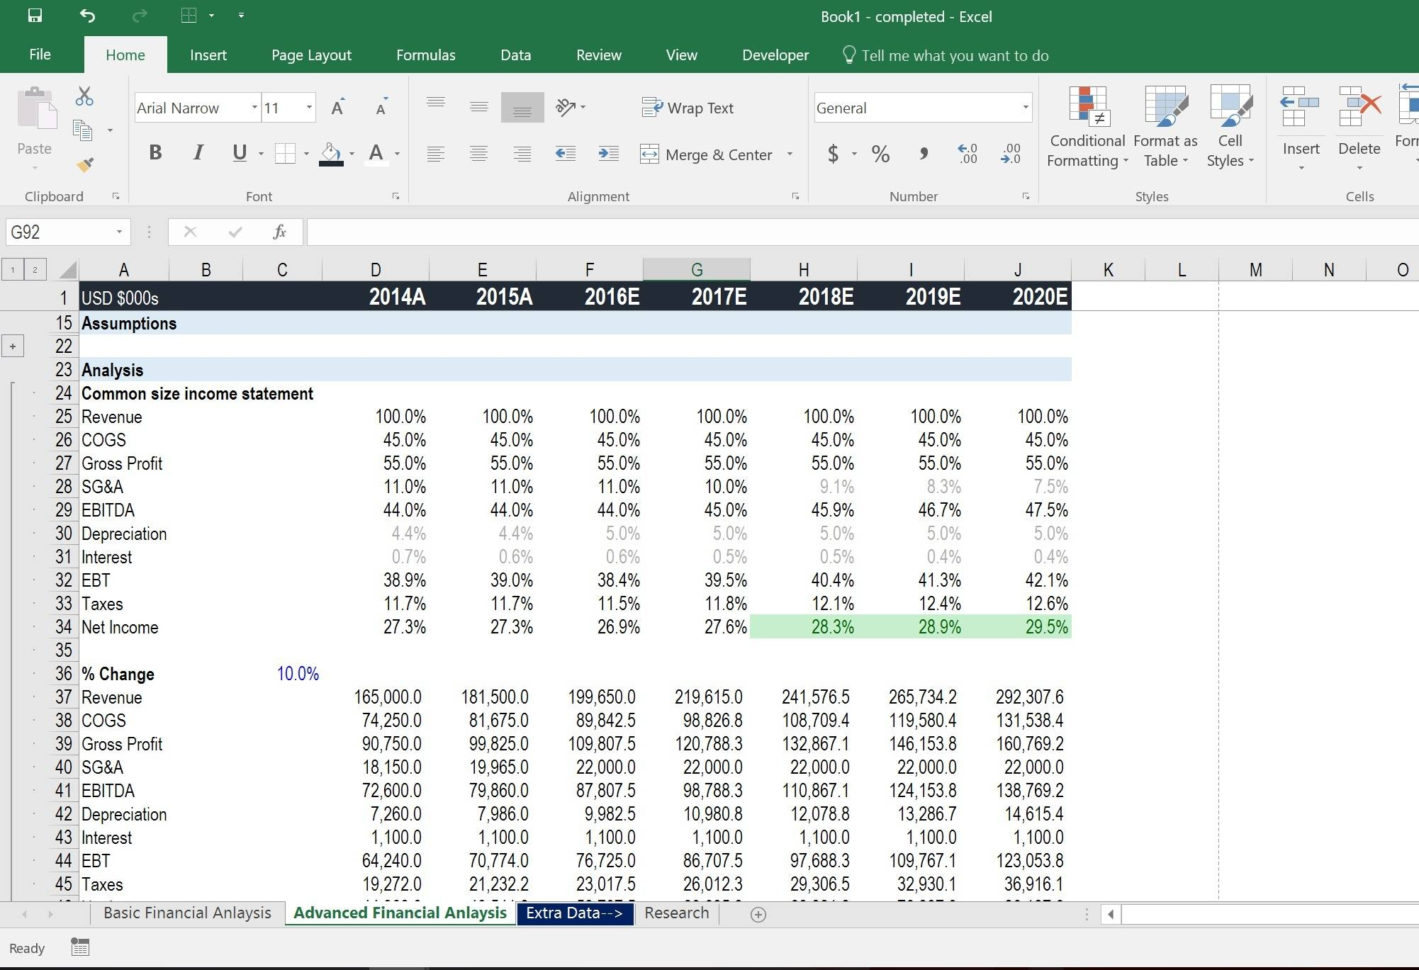 Excel Spreadsheet Training Free Online | Laobing Kaisuo For Excel Spreadsheet Training Free Online